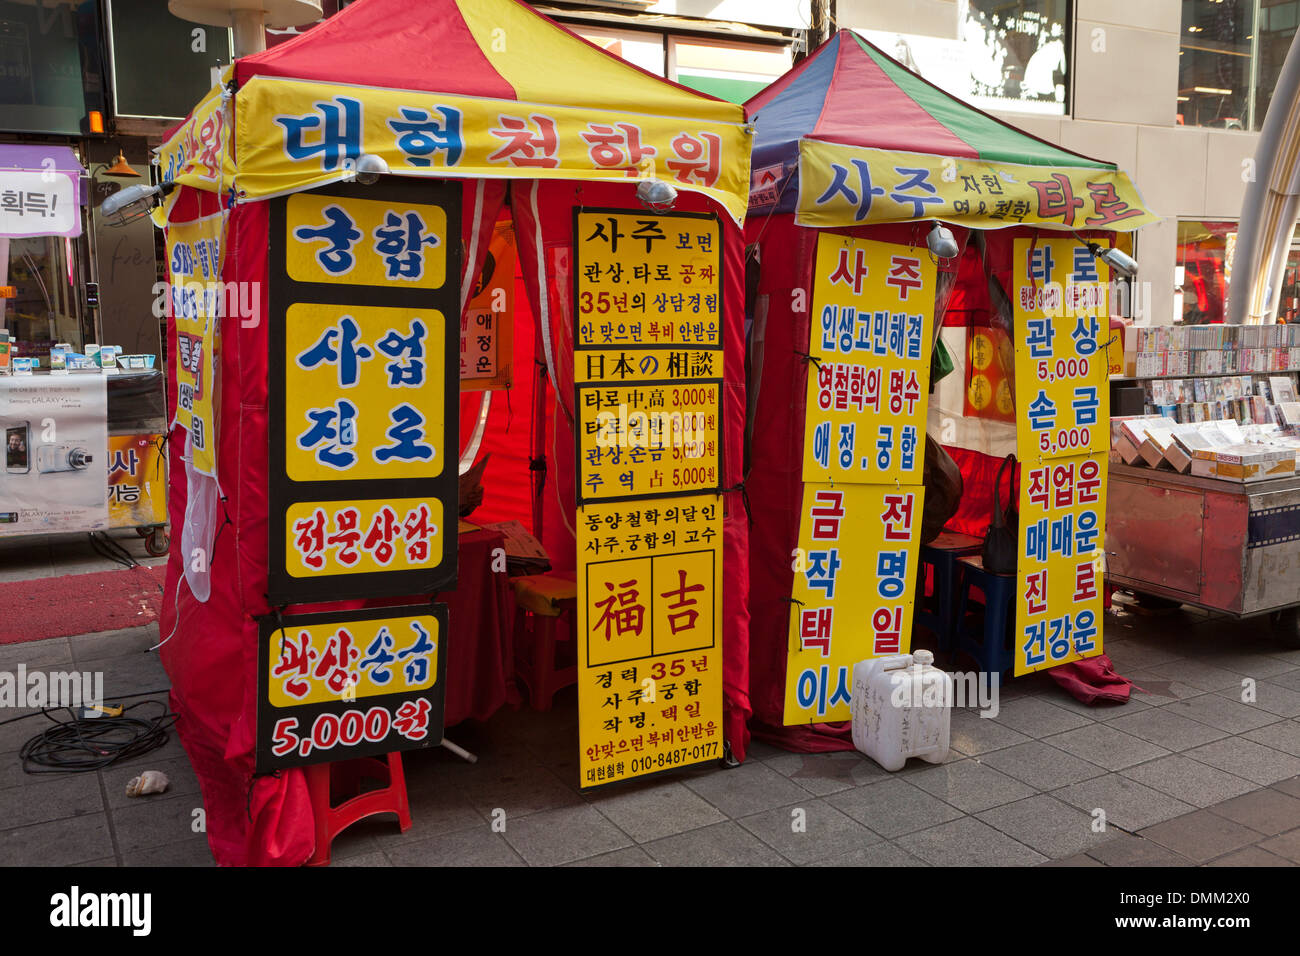 Street fortune teller tents - Busan, South Korea - Stock Image